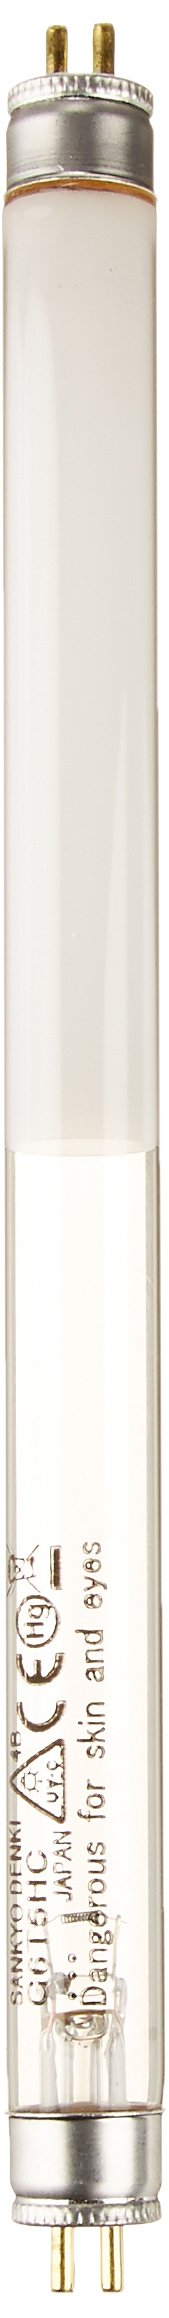 UVP 34-0015-01 Replacement UV Tube for Handheld UV Lamps, 8.3'' Length, 254nm Shortwave/365nm Longwave, 6W by UVP (Image #1)